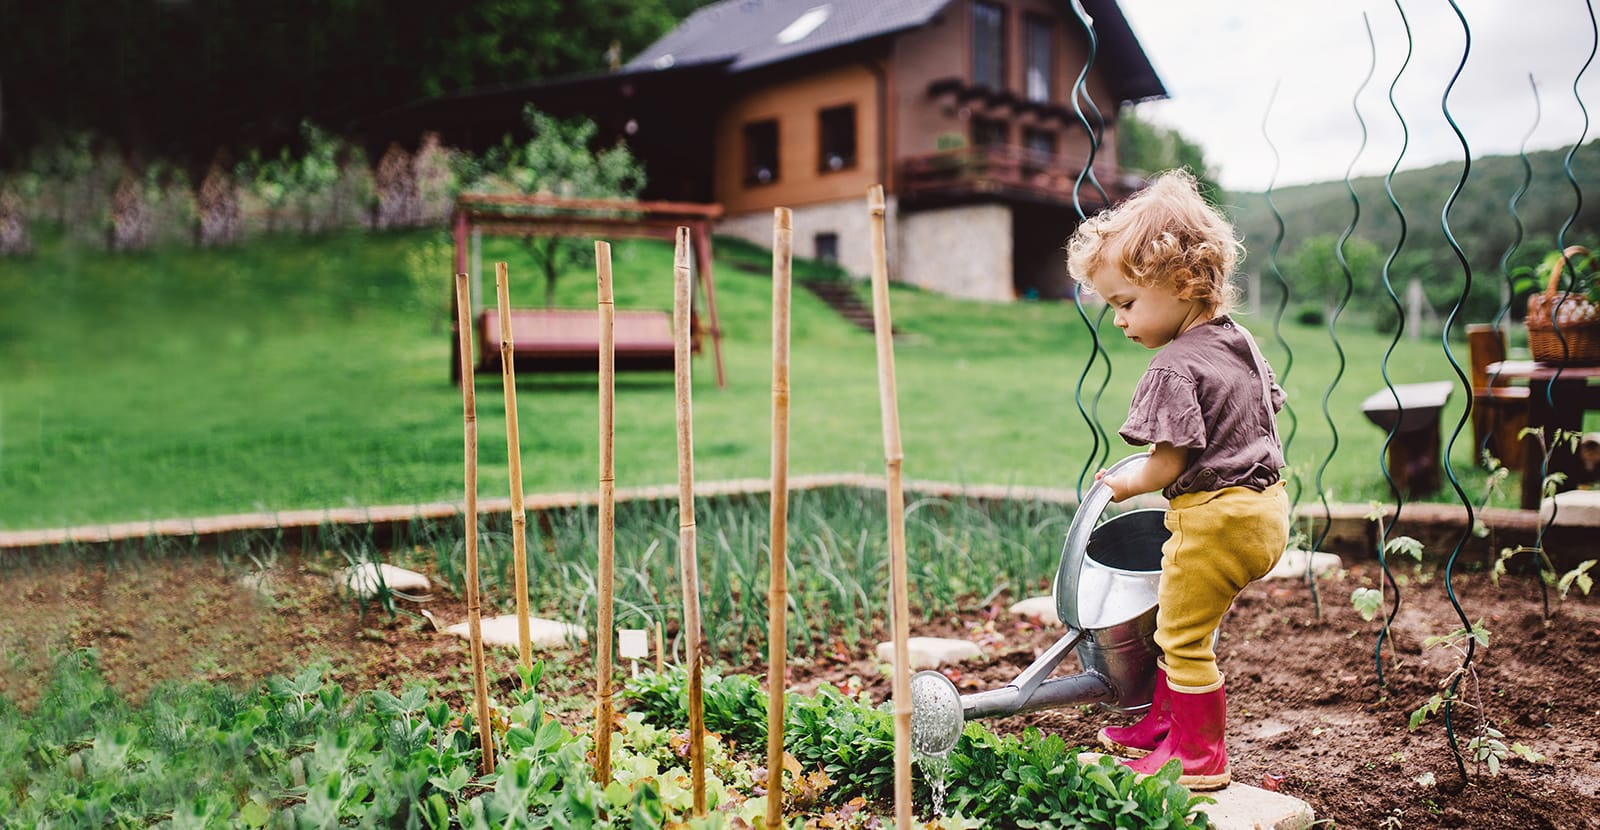 A child holds a metal watering can with both hands and waters a vegetable patch.